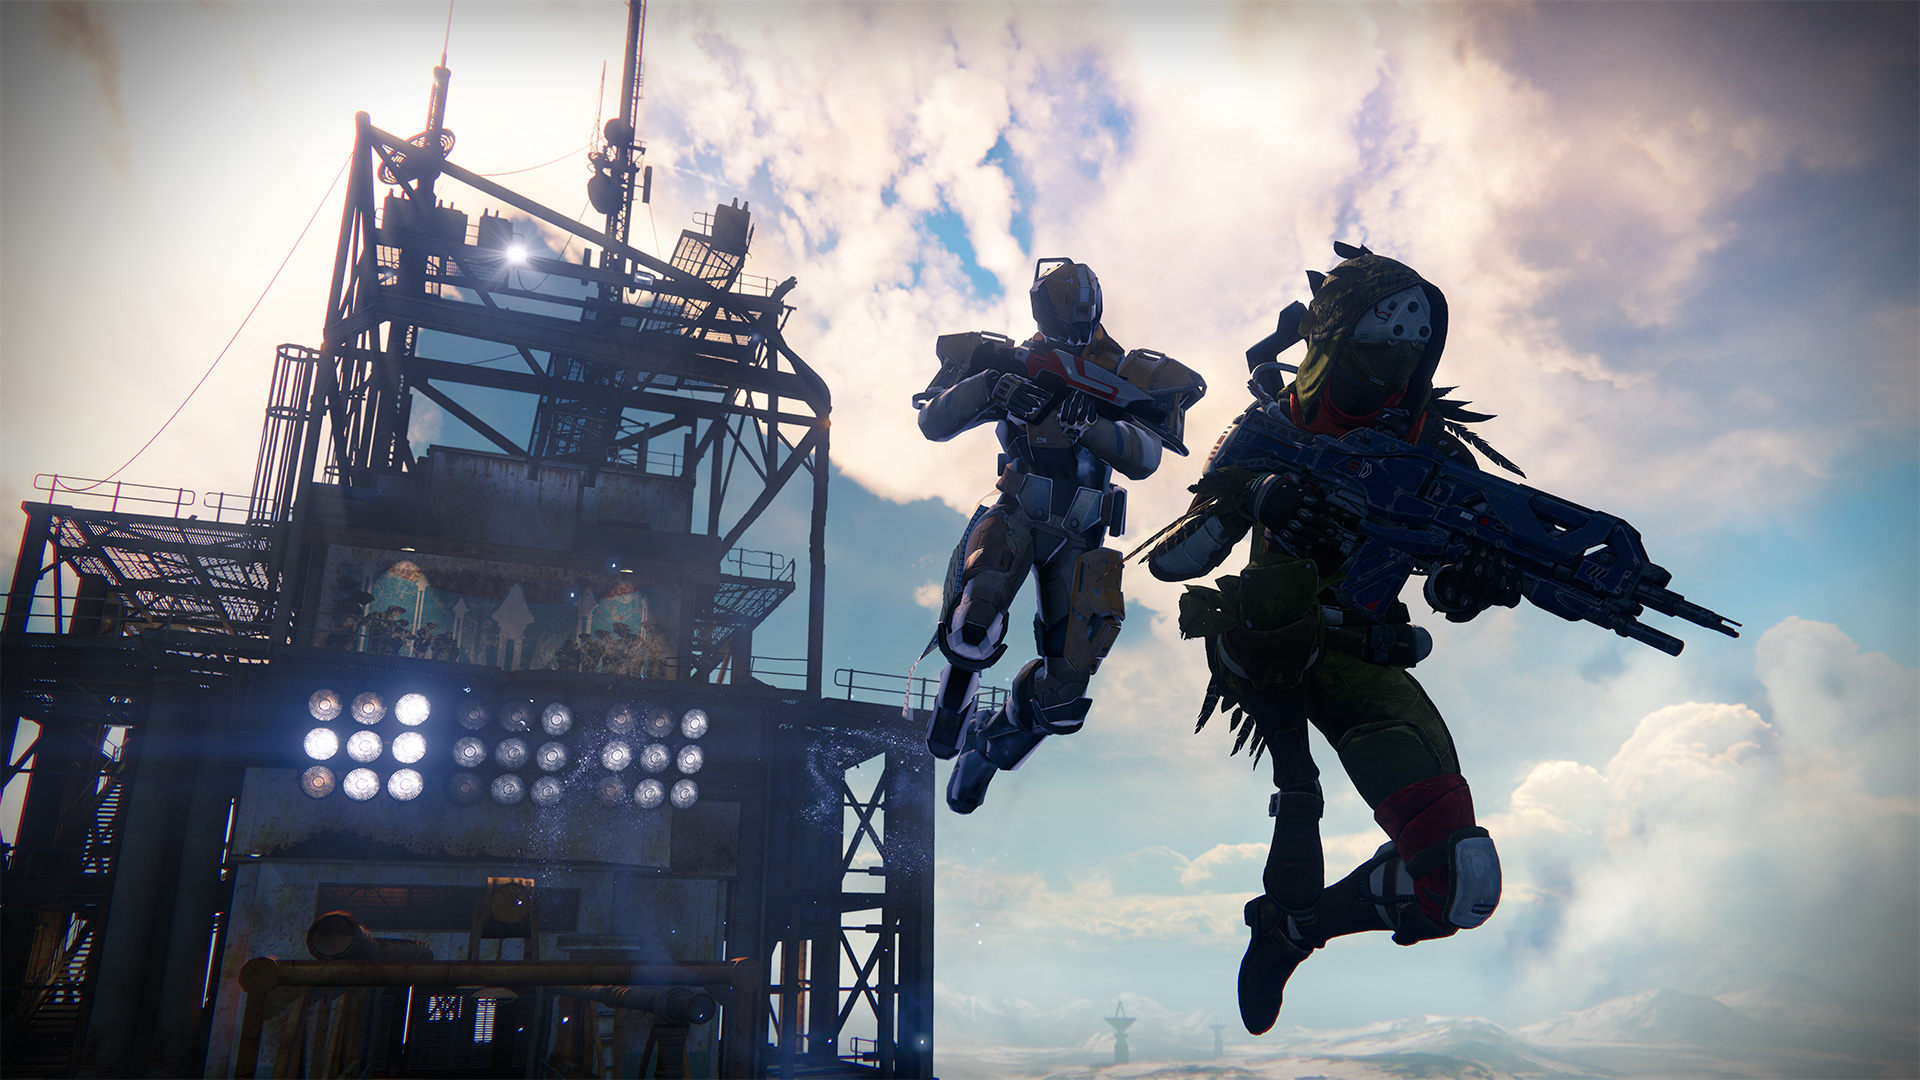 Here's how Destiny: The Taken King's overhauled leveling and quests work